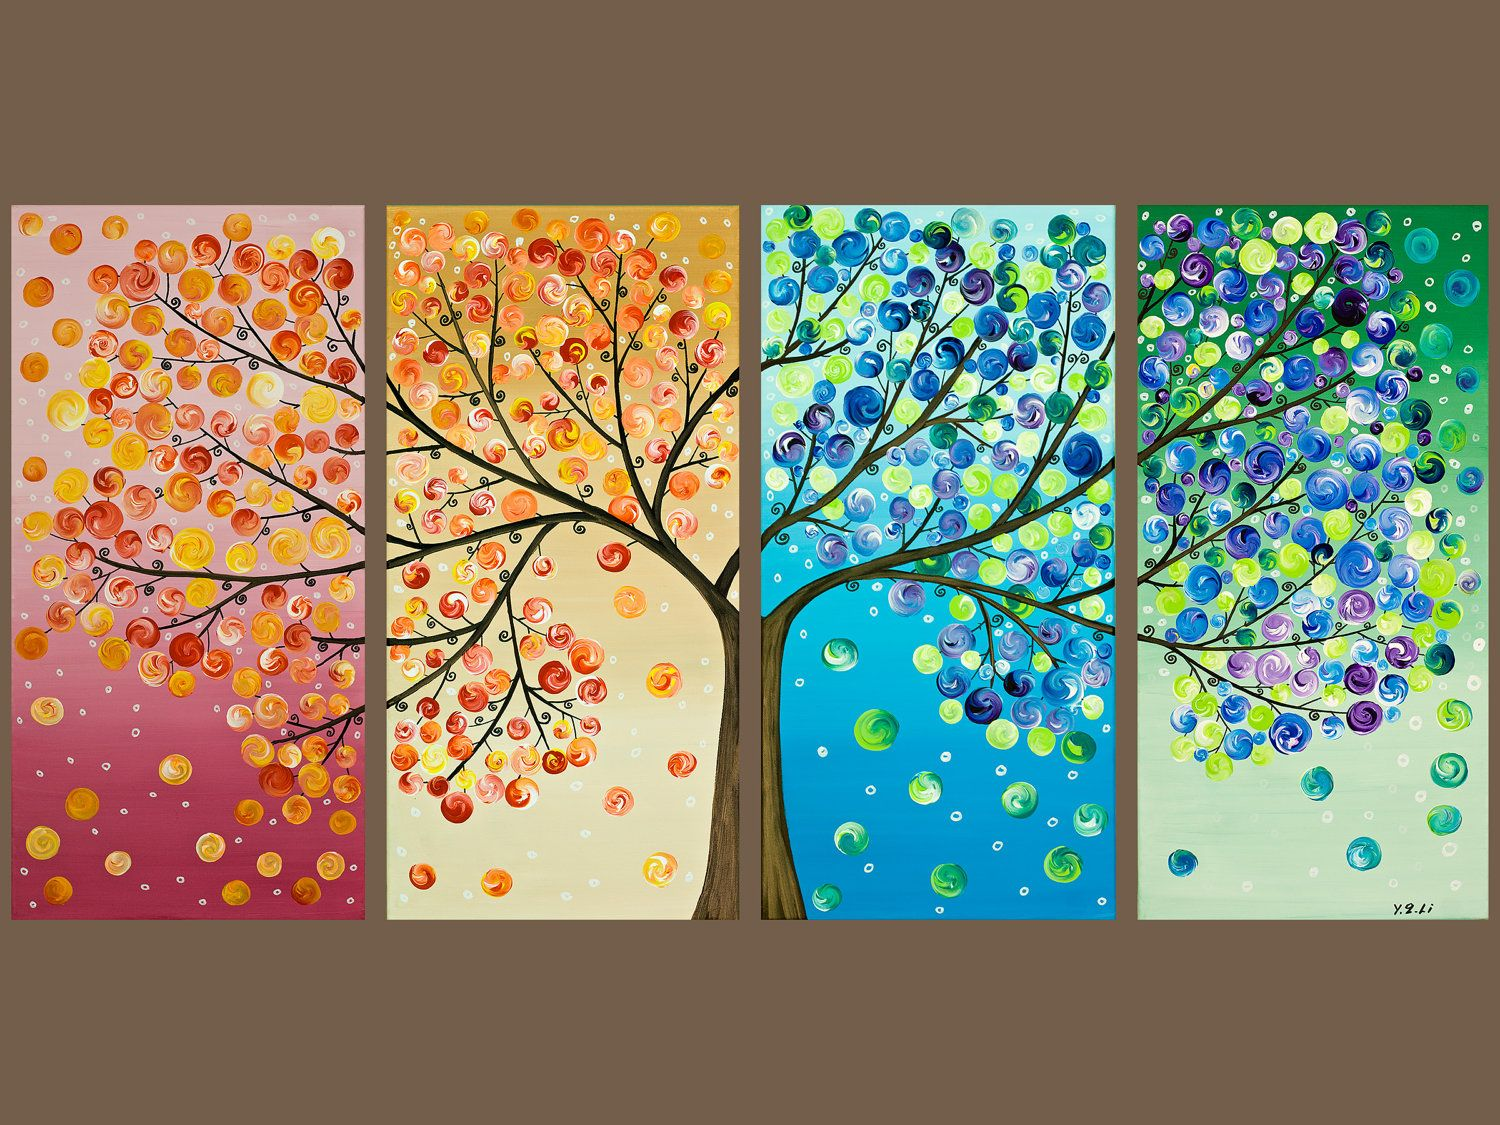 Large abstract art original artwork acrylic gift for her wall art large abstract art original artwork acrylic gift for her wall art canvas art four seasons tree 365 days of happinessby qiqigallery diy craftsdecor amipublicfo Images